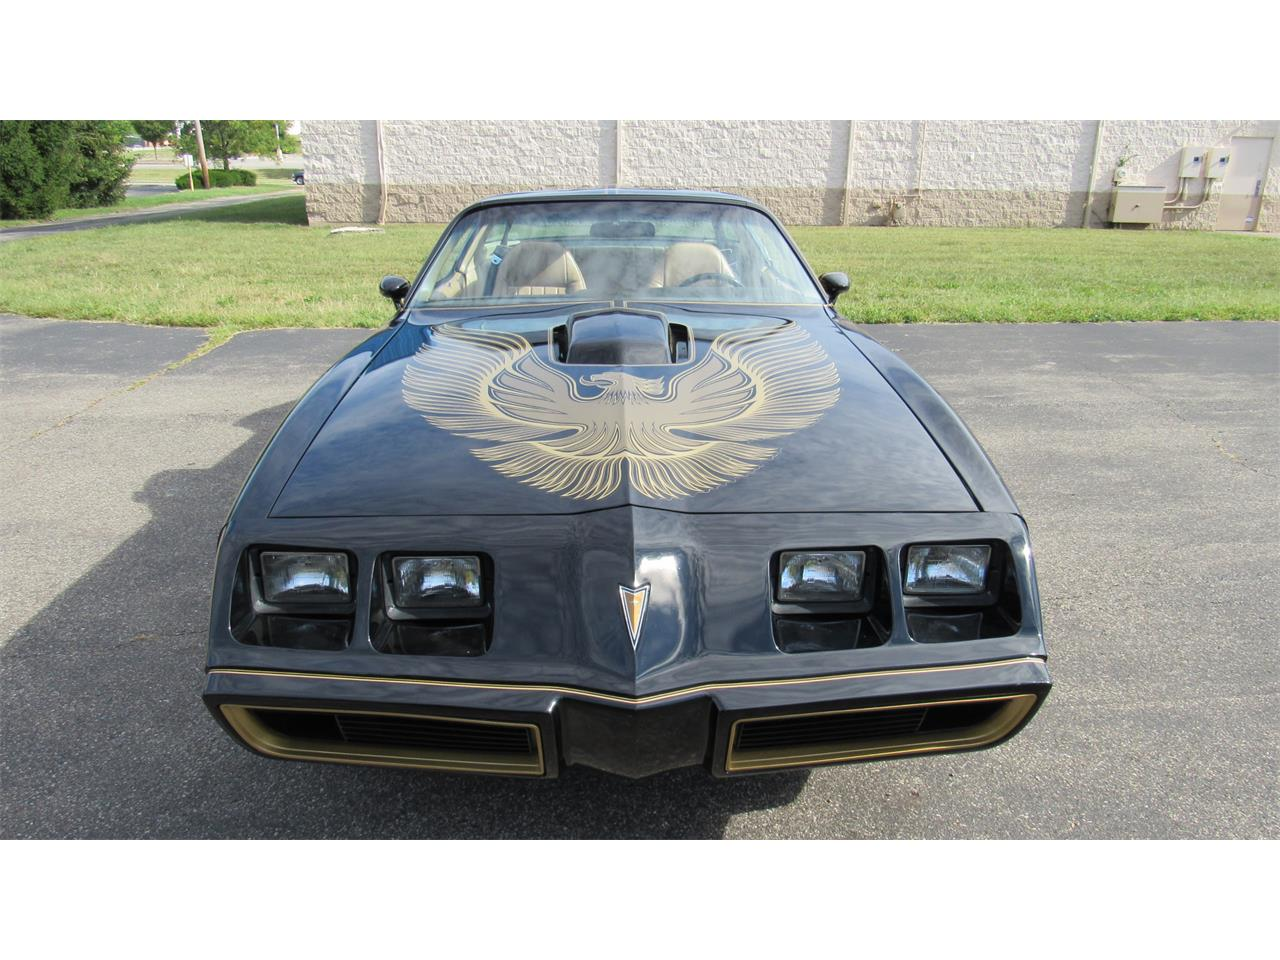 1981 Pontiac Firebird Trans Am (CC-1261095) for sale in Milford, Ohio